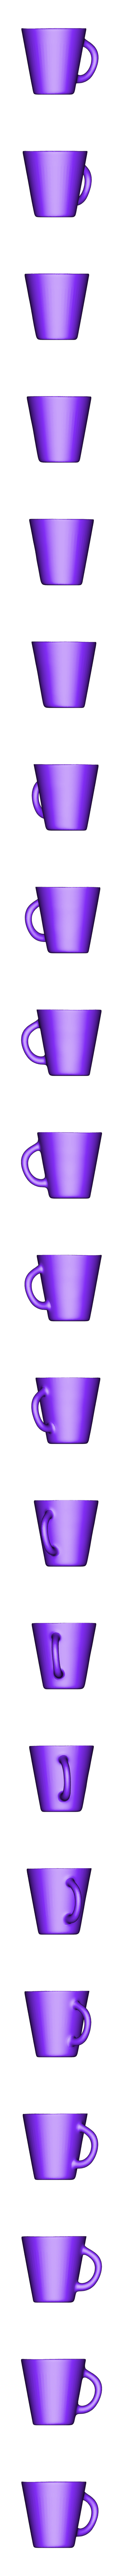 Cup.stl Download STL file Cup • 3D printer object, sammy3